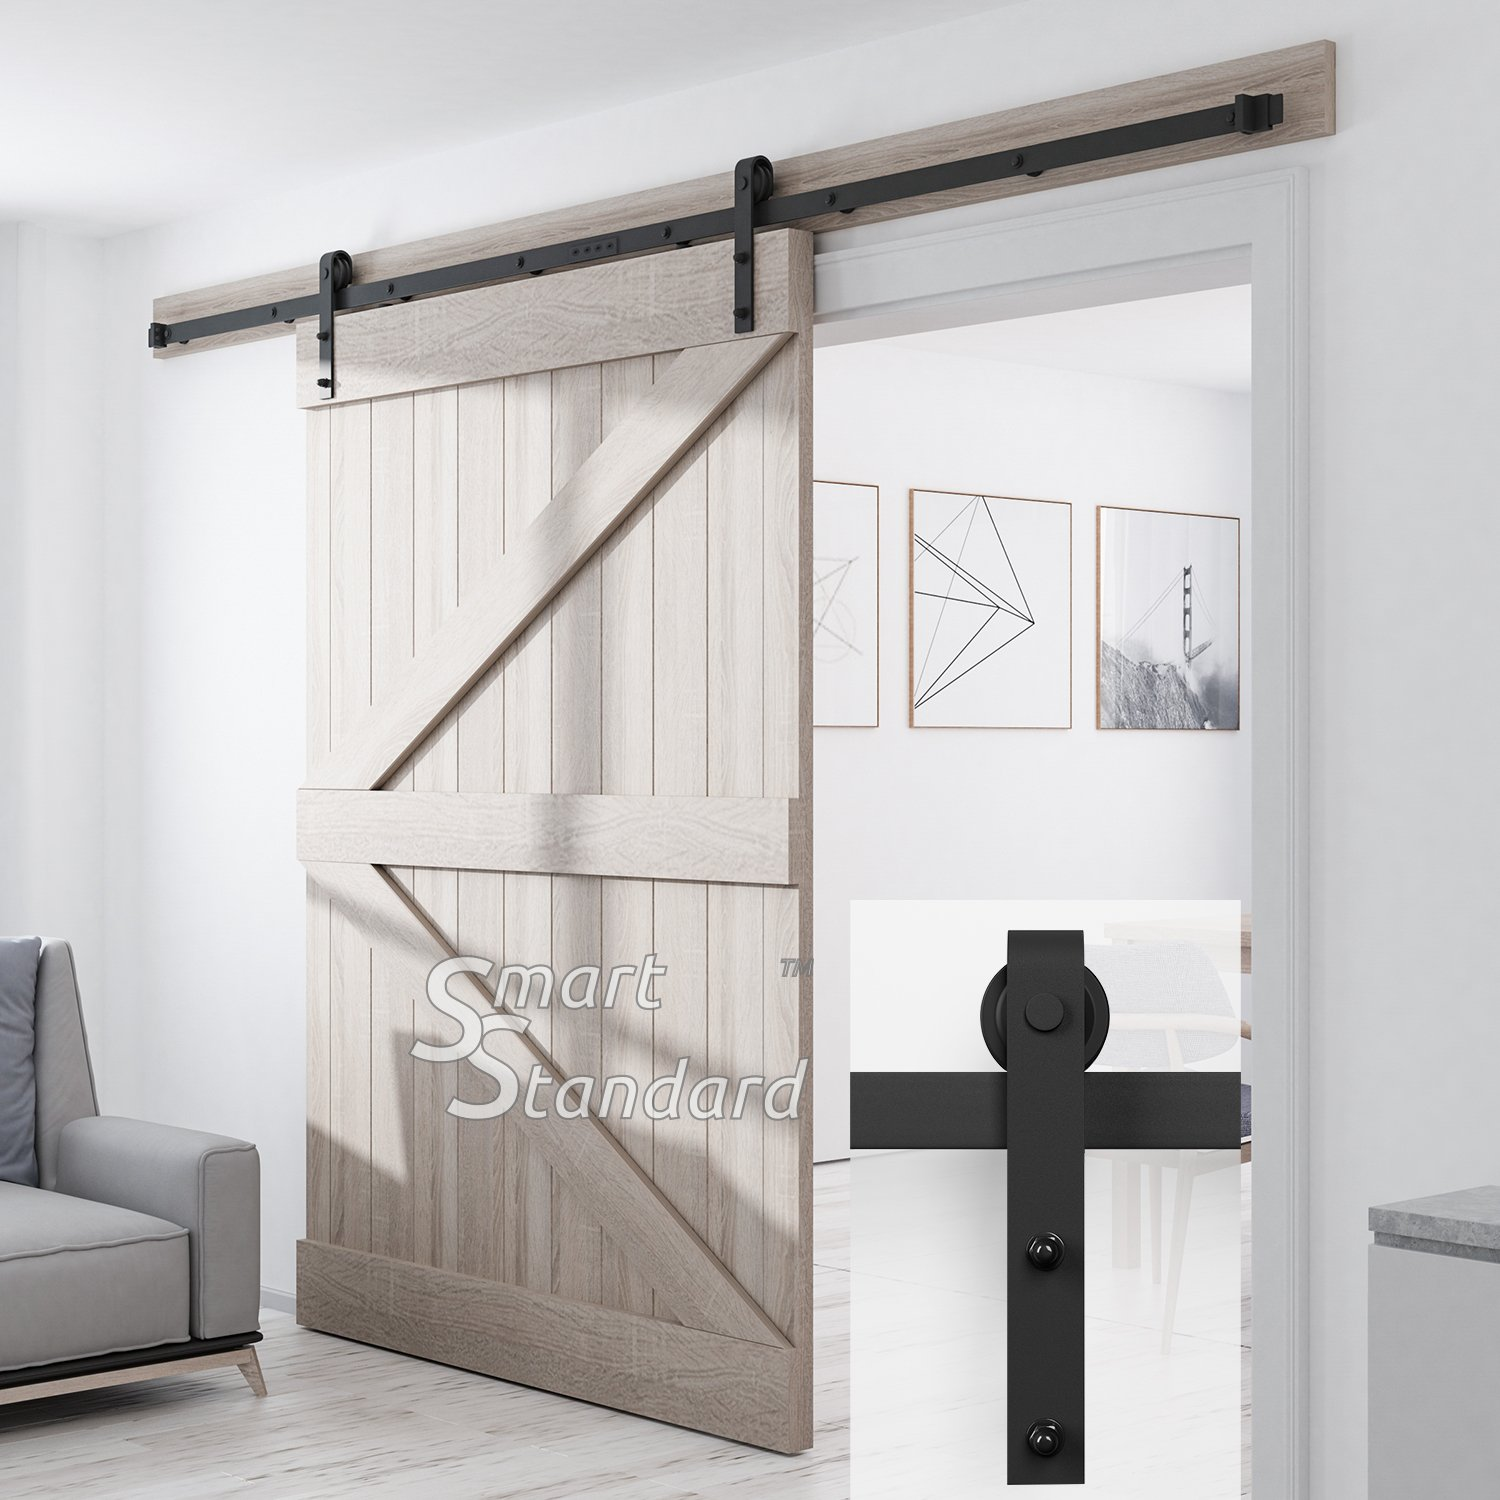 SMARTSTANDARD SDH1000JSHAPE01BK Heavy Duty Sturdy Sliding Barn Door Hardware Kit, 10' DoubleRail,Super Smoothly and Quietly, Simple and Easy to Install, Fit 60'' Wide DoorPanel by SMARTSTANDARD (Image #1)